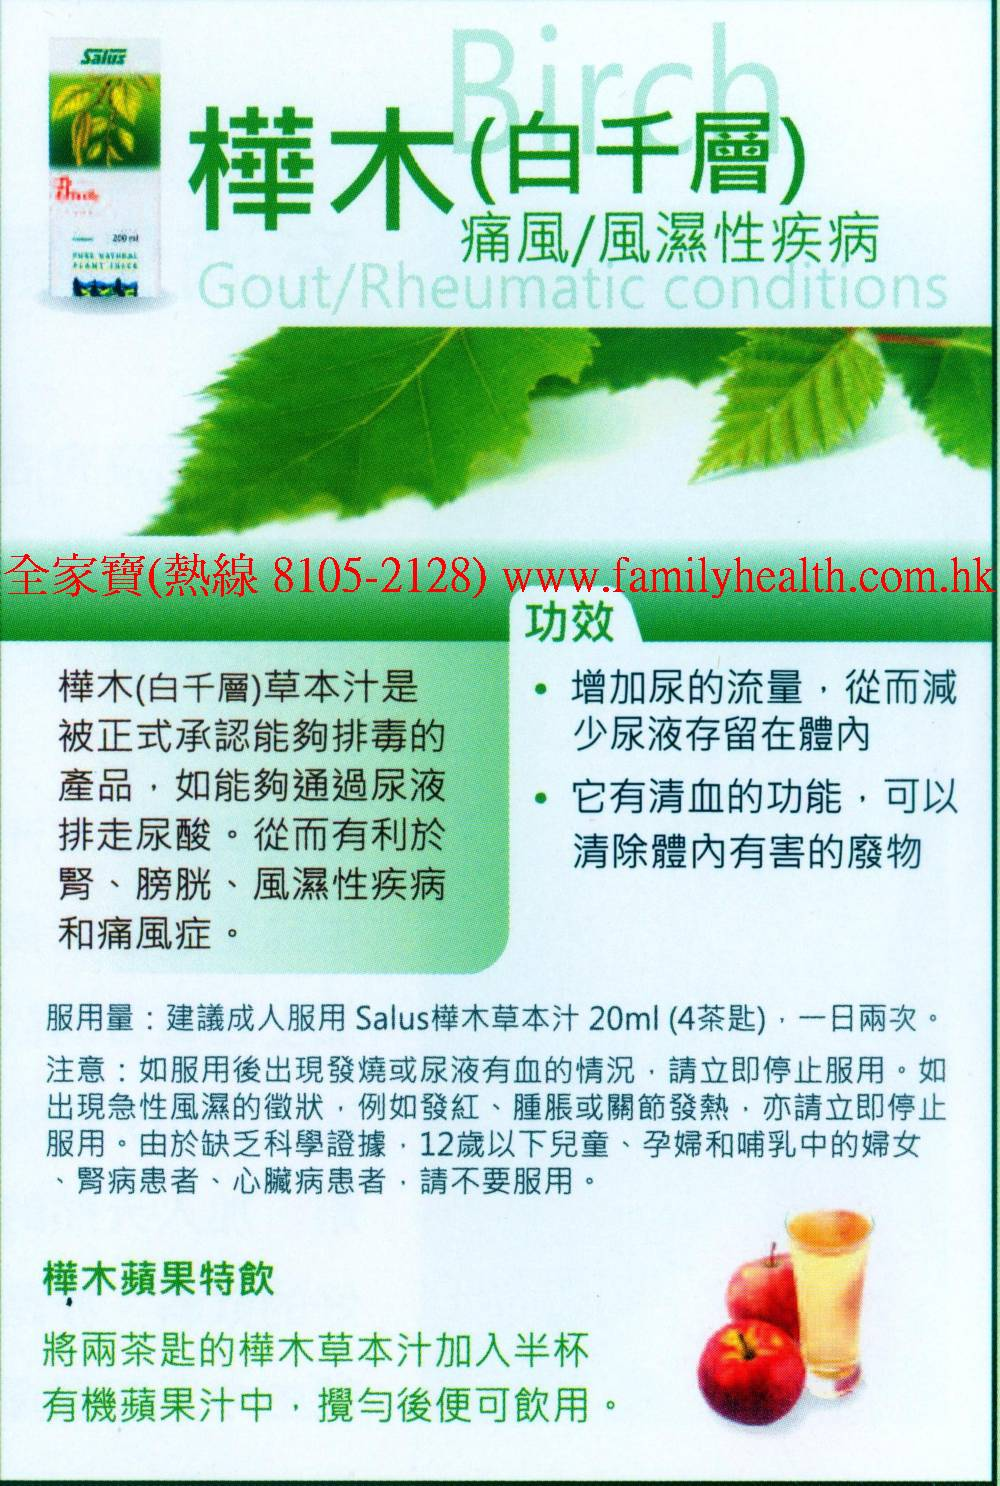 http://www.familyhealth.com.hk/files/full/194_1.jpg